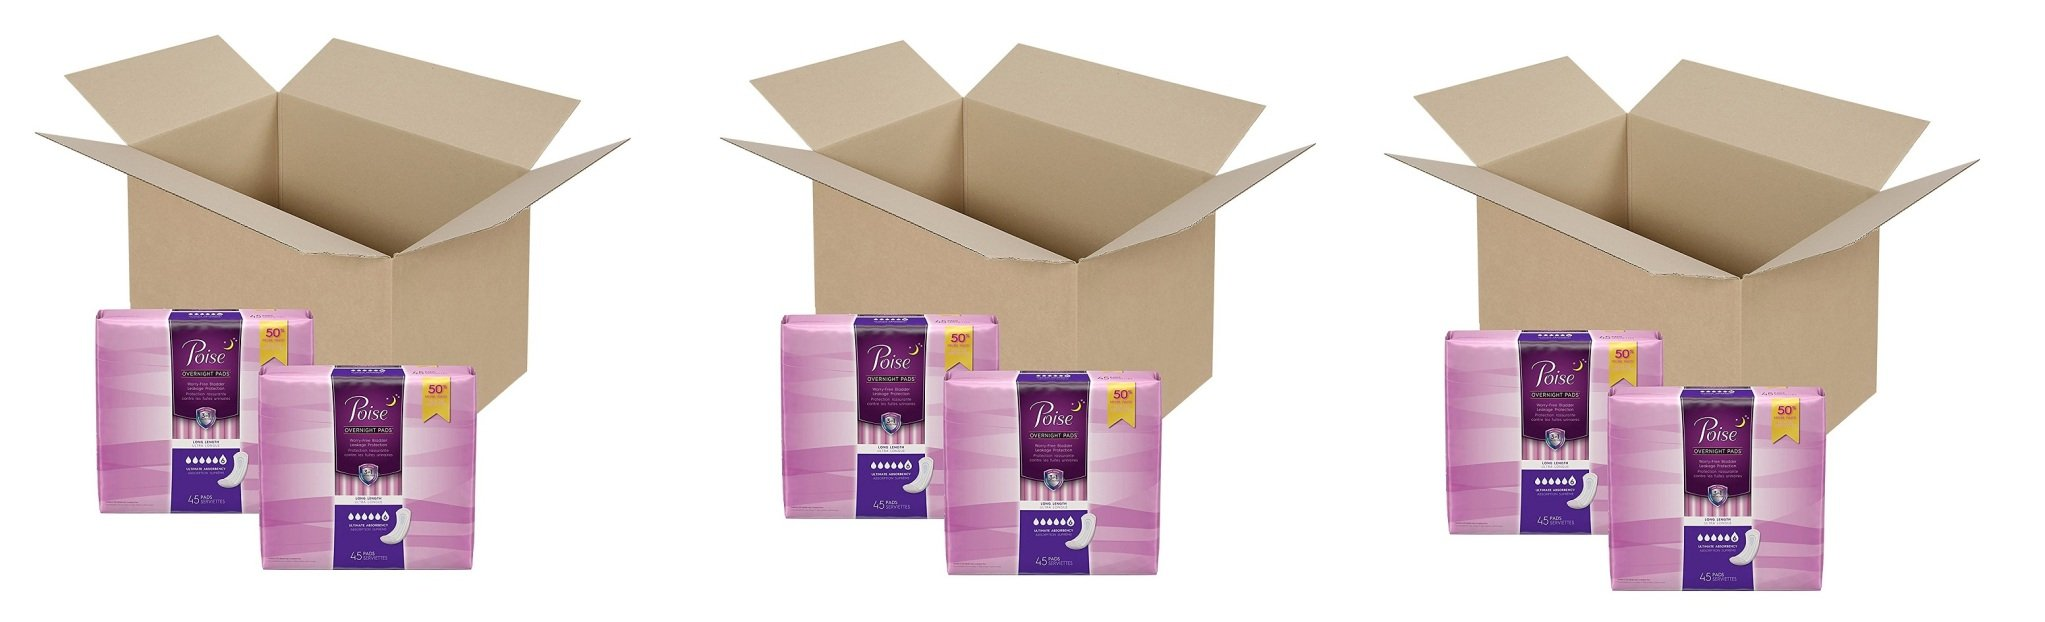 Poise Incontinence Overnight Pads, Ultimate Absorbency, Long, UVknMR 3 Pack (90 Count)